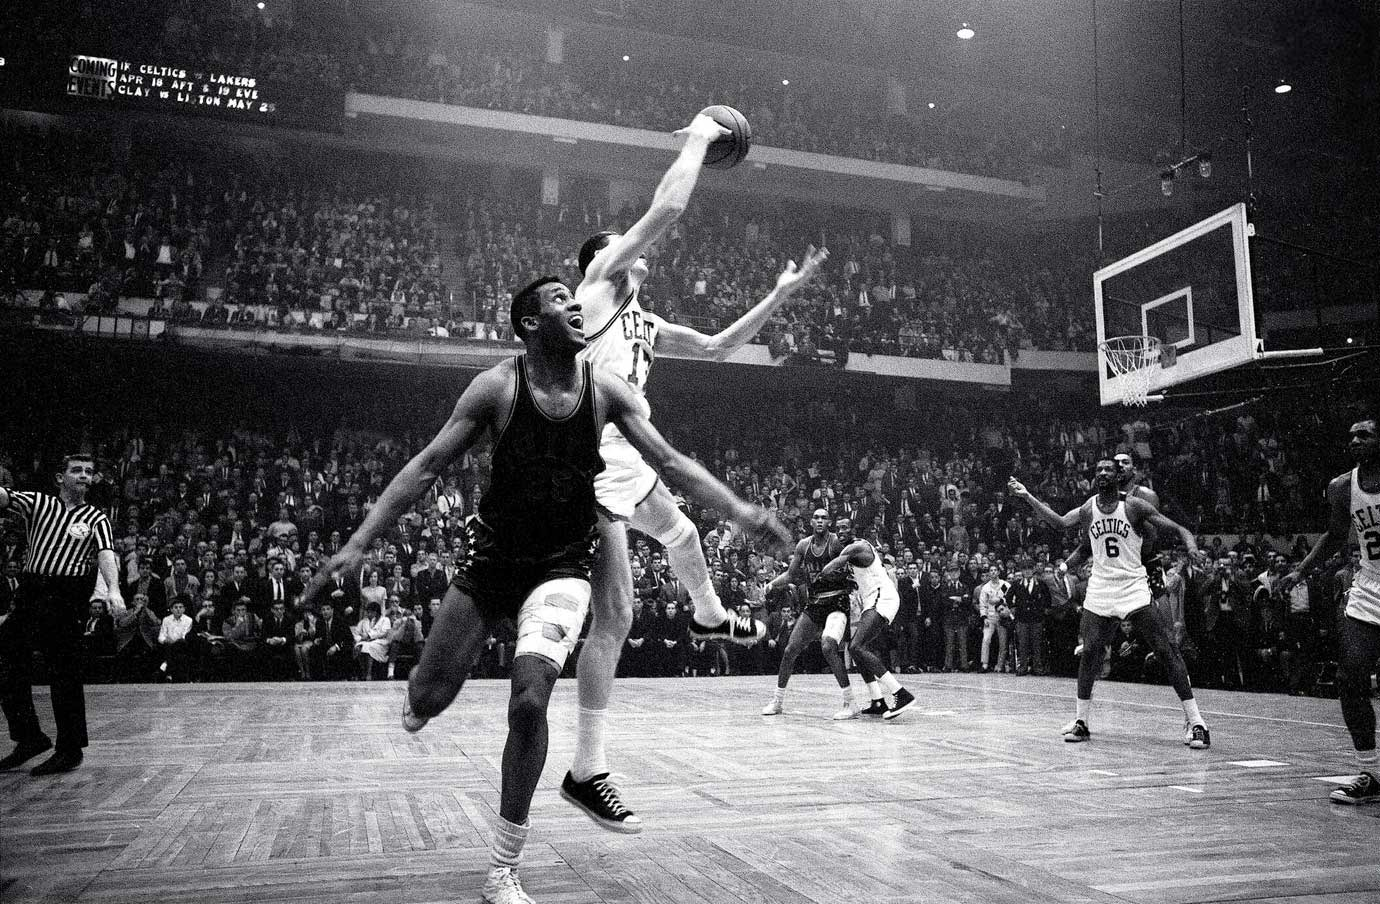 """After Red Auerbach had lit his traditional victory cigar with his Celtics leading 110-103, the 76ers closed the gap to 110-109 and had possession with seconds left. But as Hal Greer tried to inbound to Chet Walker, Boston's John Havlicek stole the pass, leading longtime Celtics play-by-play man Johnny Most to famously cry, """"Havlicek stole the ball! Havlicek stole the ball!"""""""